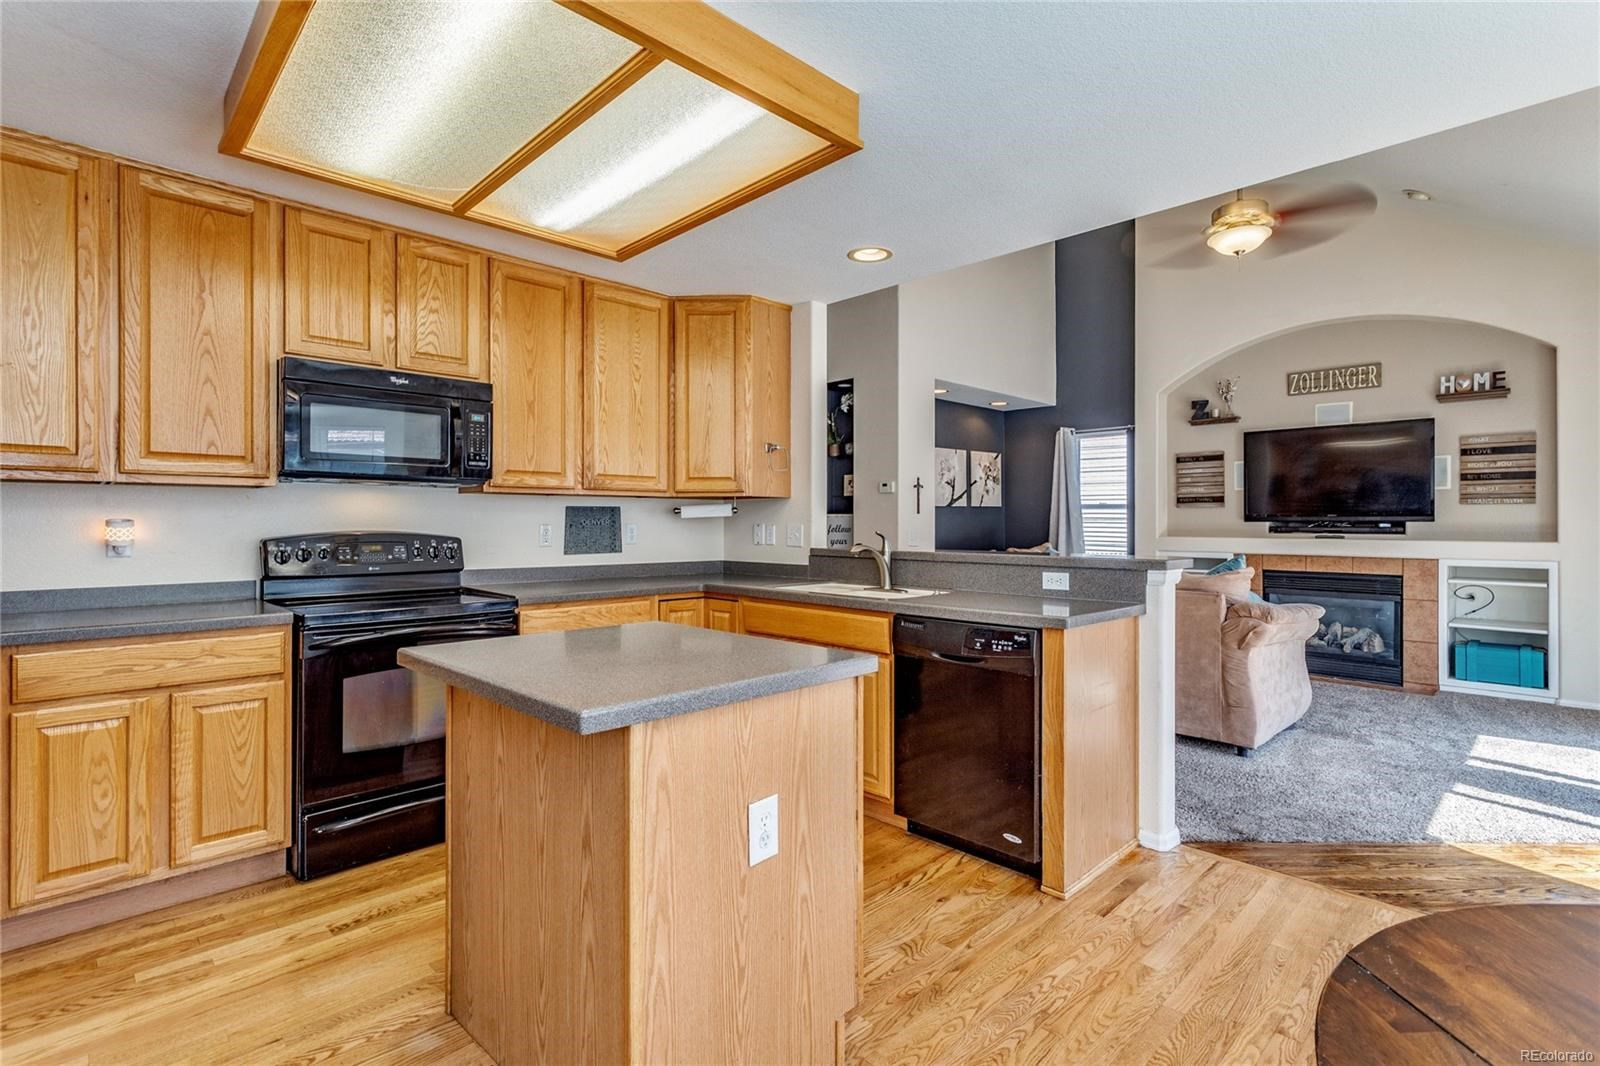 MLS# 3396693 - 13 - 6084 S Zante Way, Aurora, CO 80015